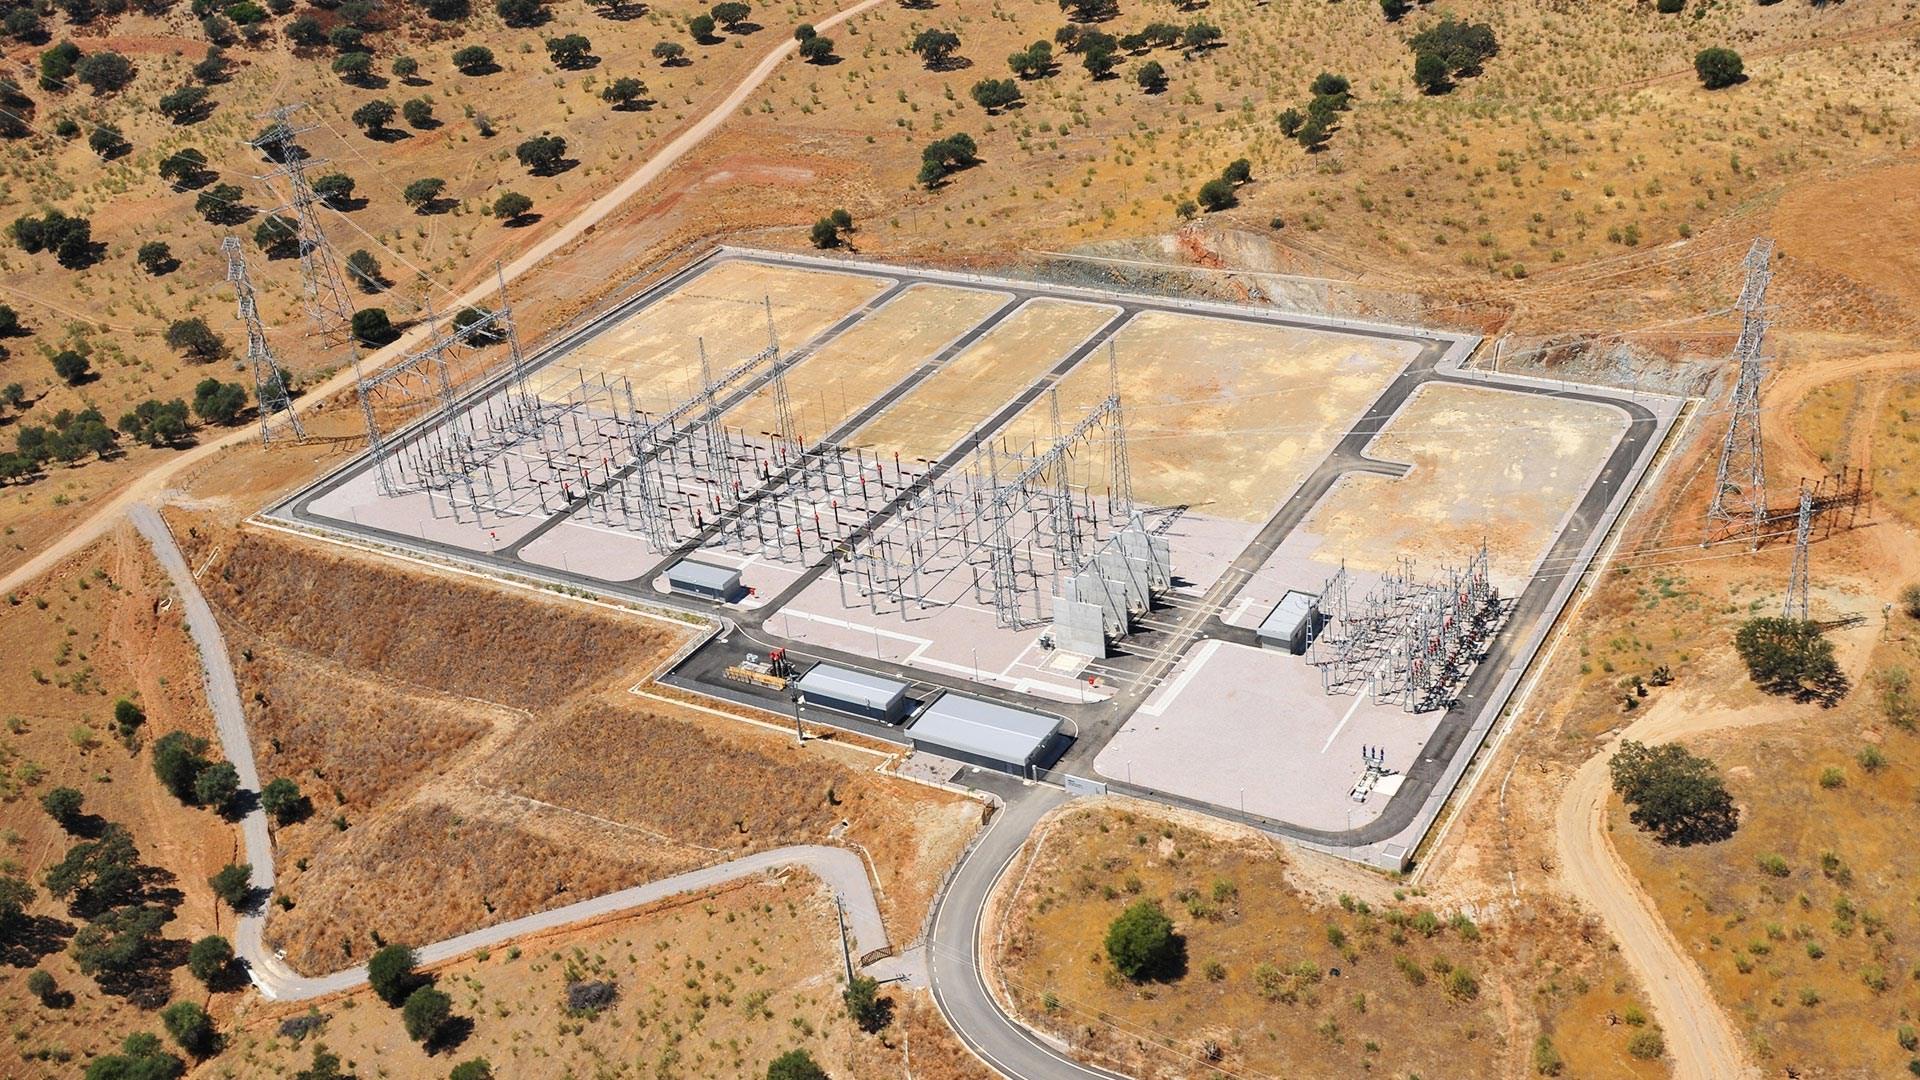 Alqueva 400/60k Electrical Substation